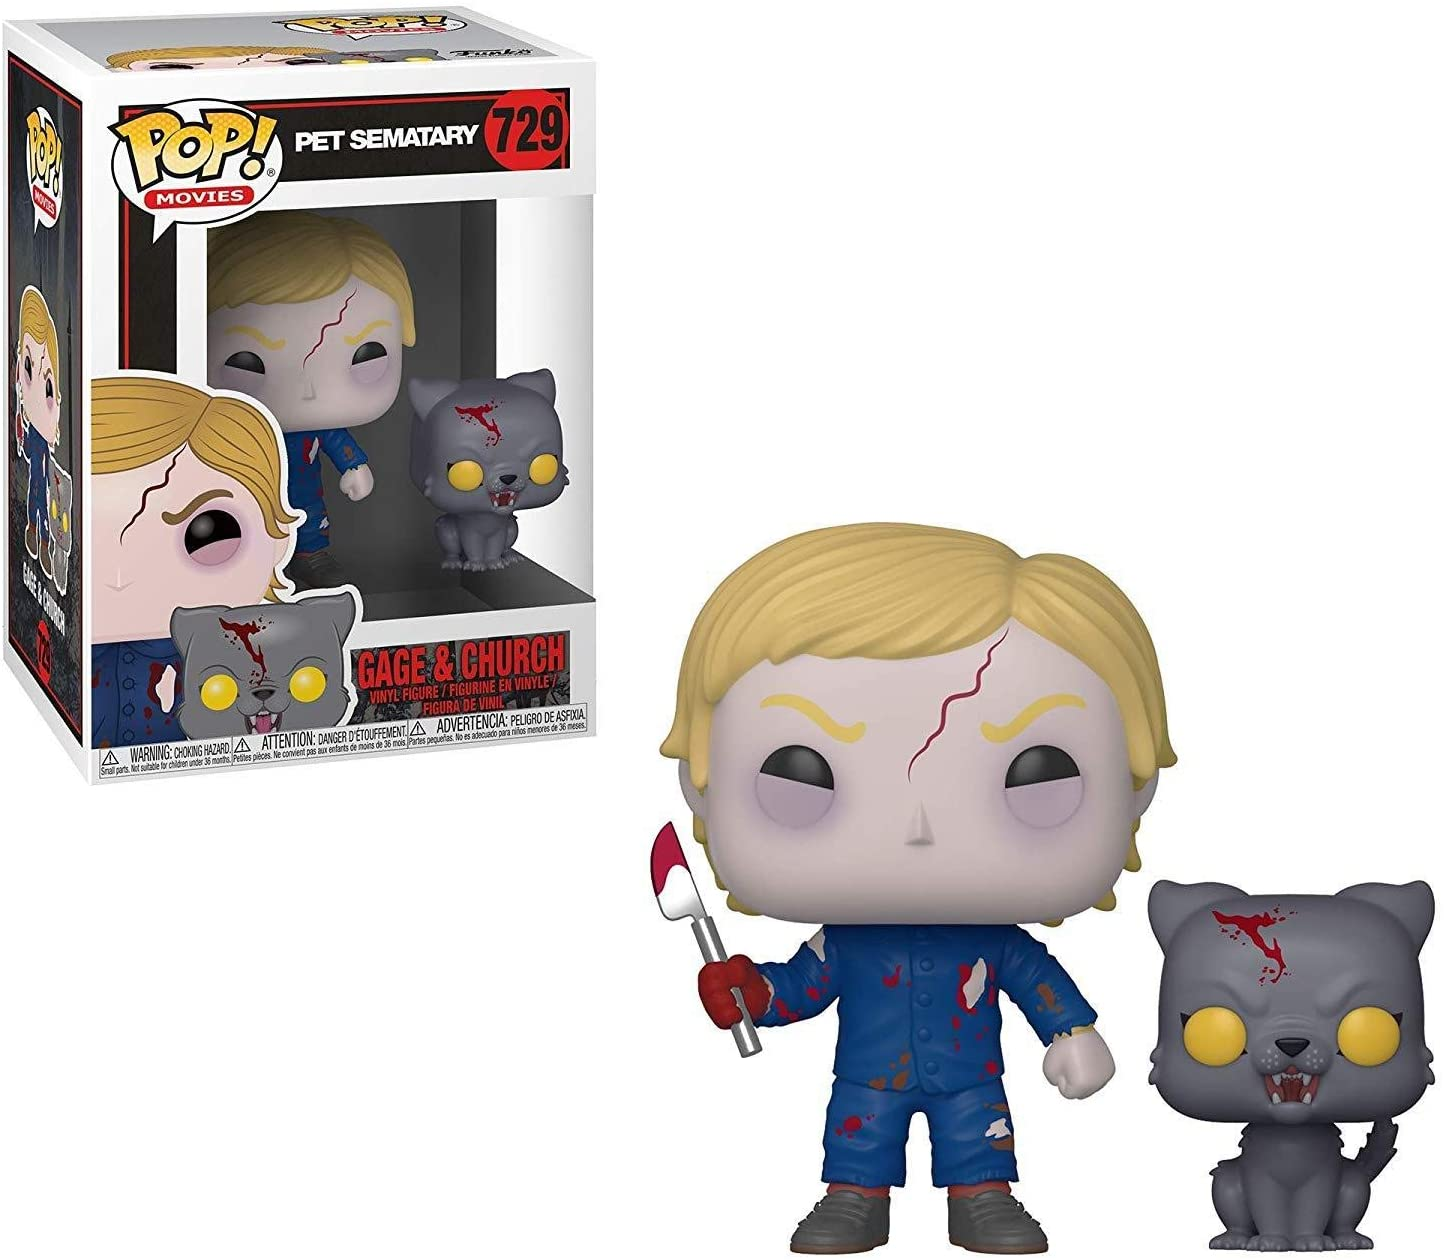 Funko- Pop & Buddy Vinilo Pet Sematary Undead Gage & Church Figura Coleccionable, Multicolor, Talla única (37628)